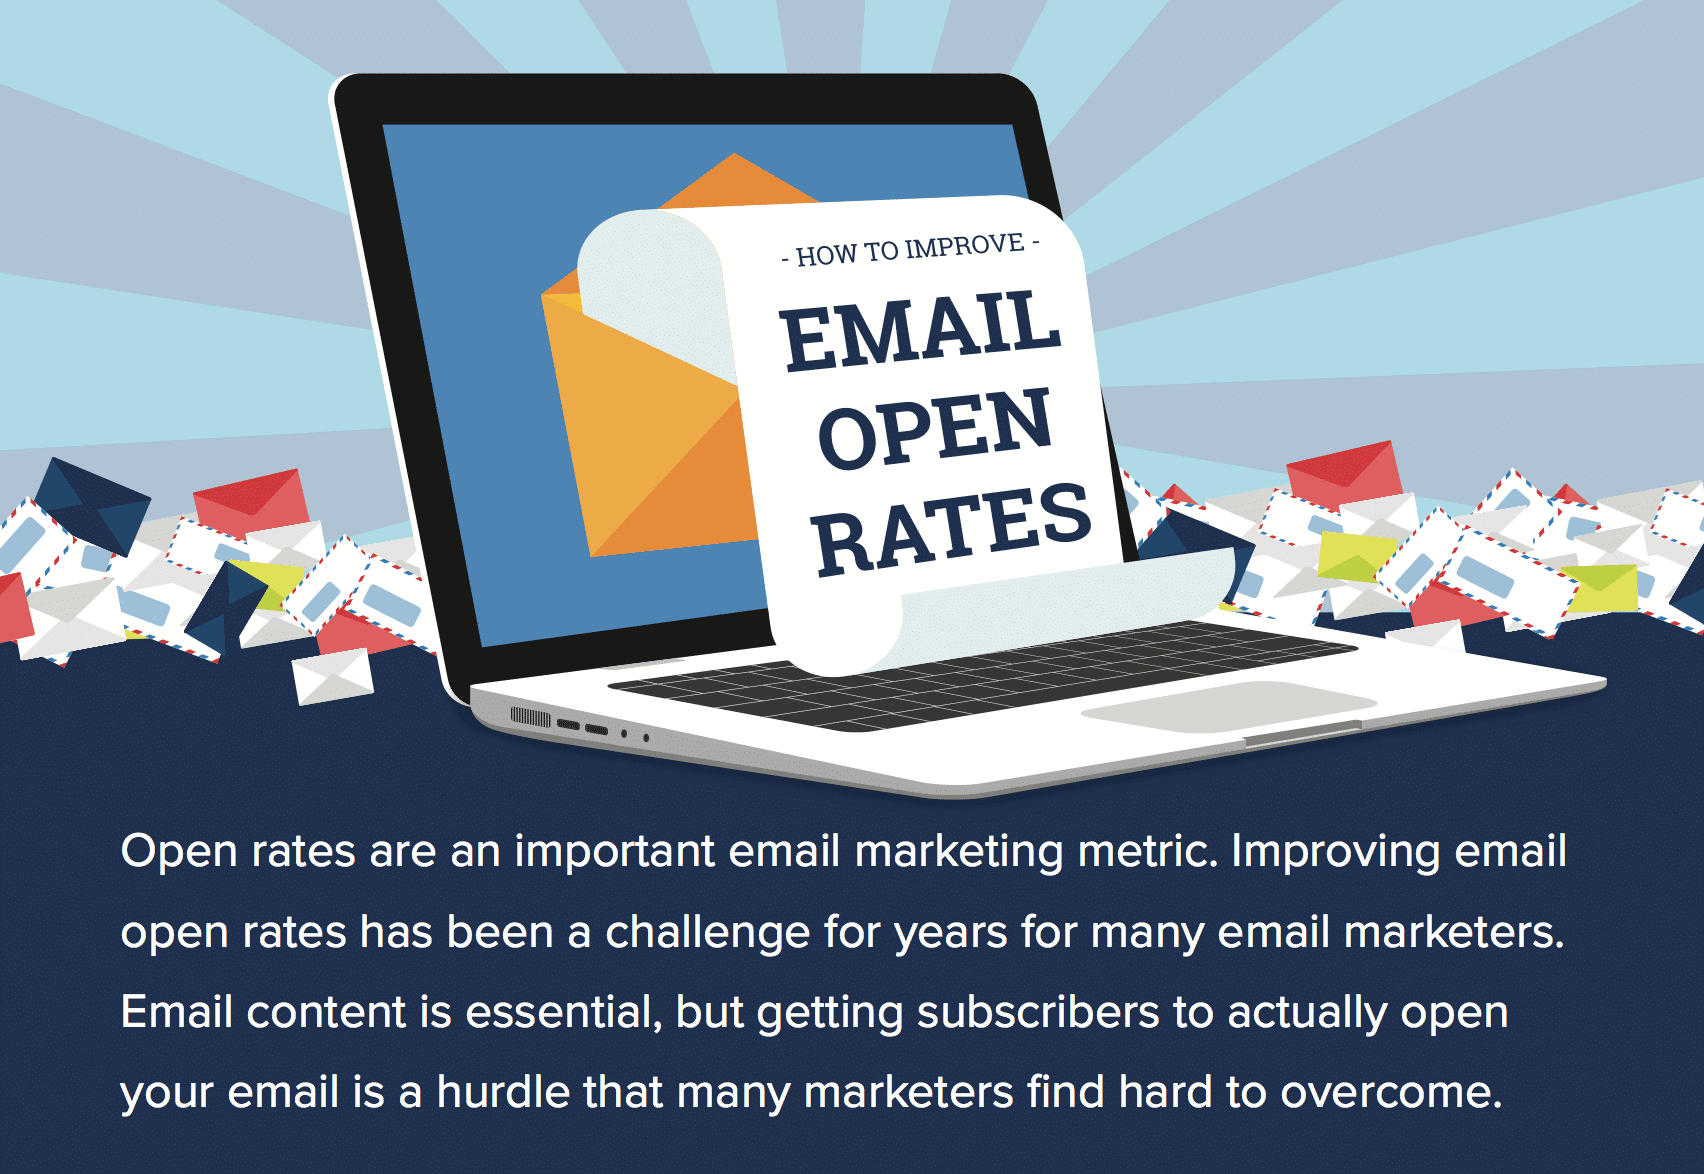 Tips For Improving Email Open Rates